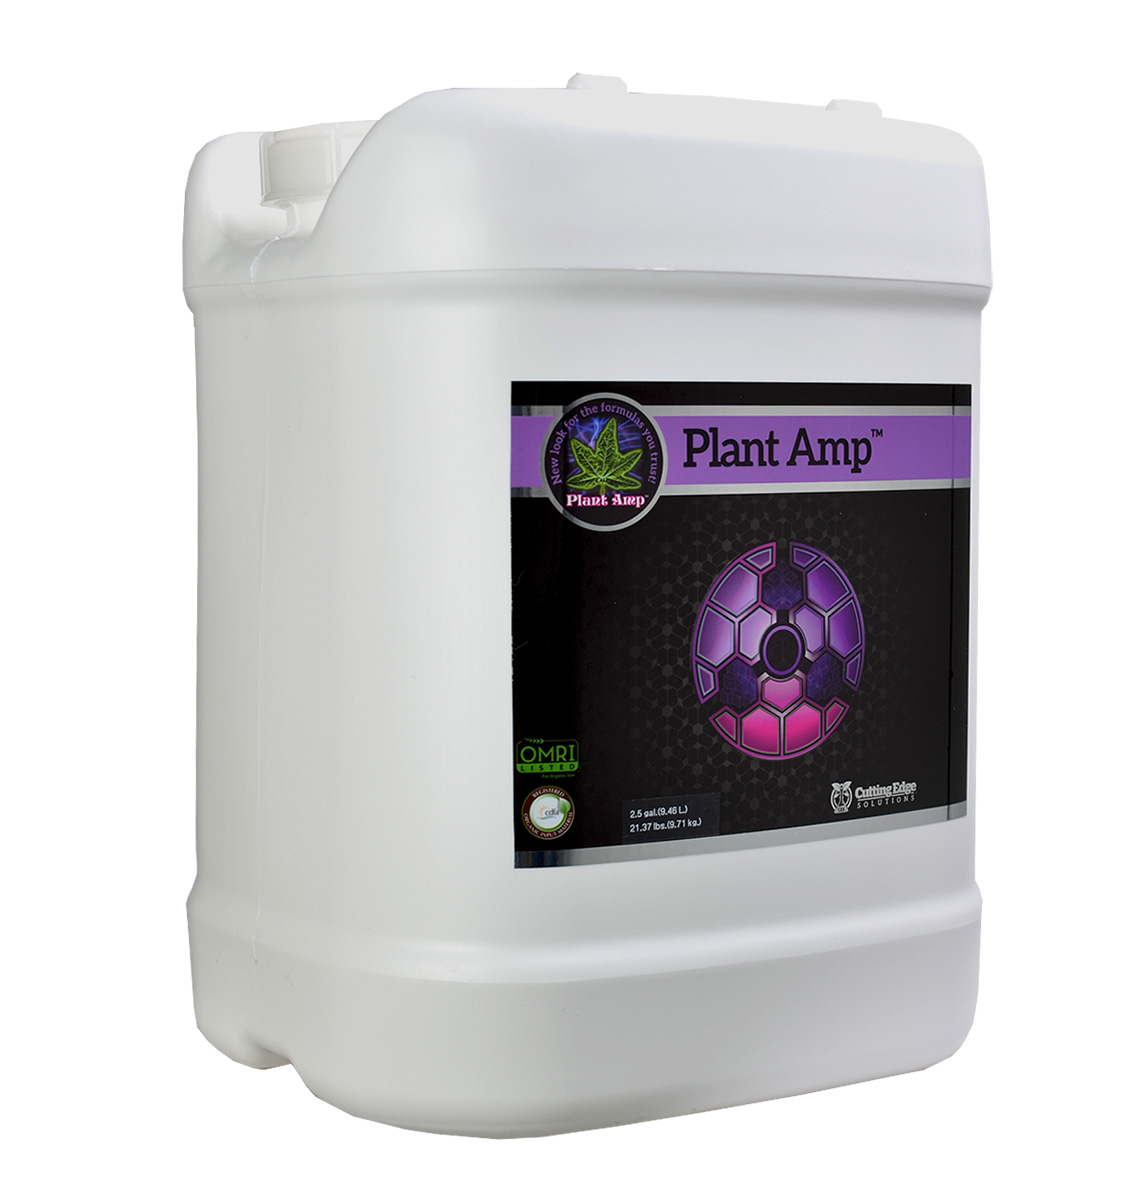 Cutting Edge Solutions Plant Amp 2.5 Gallon